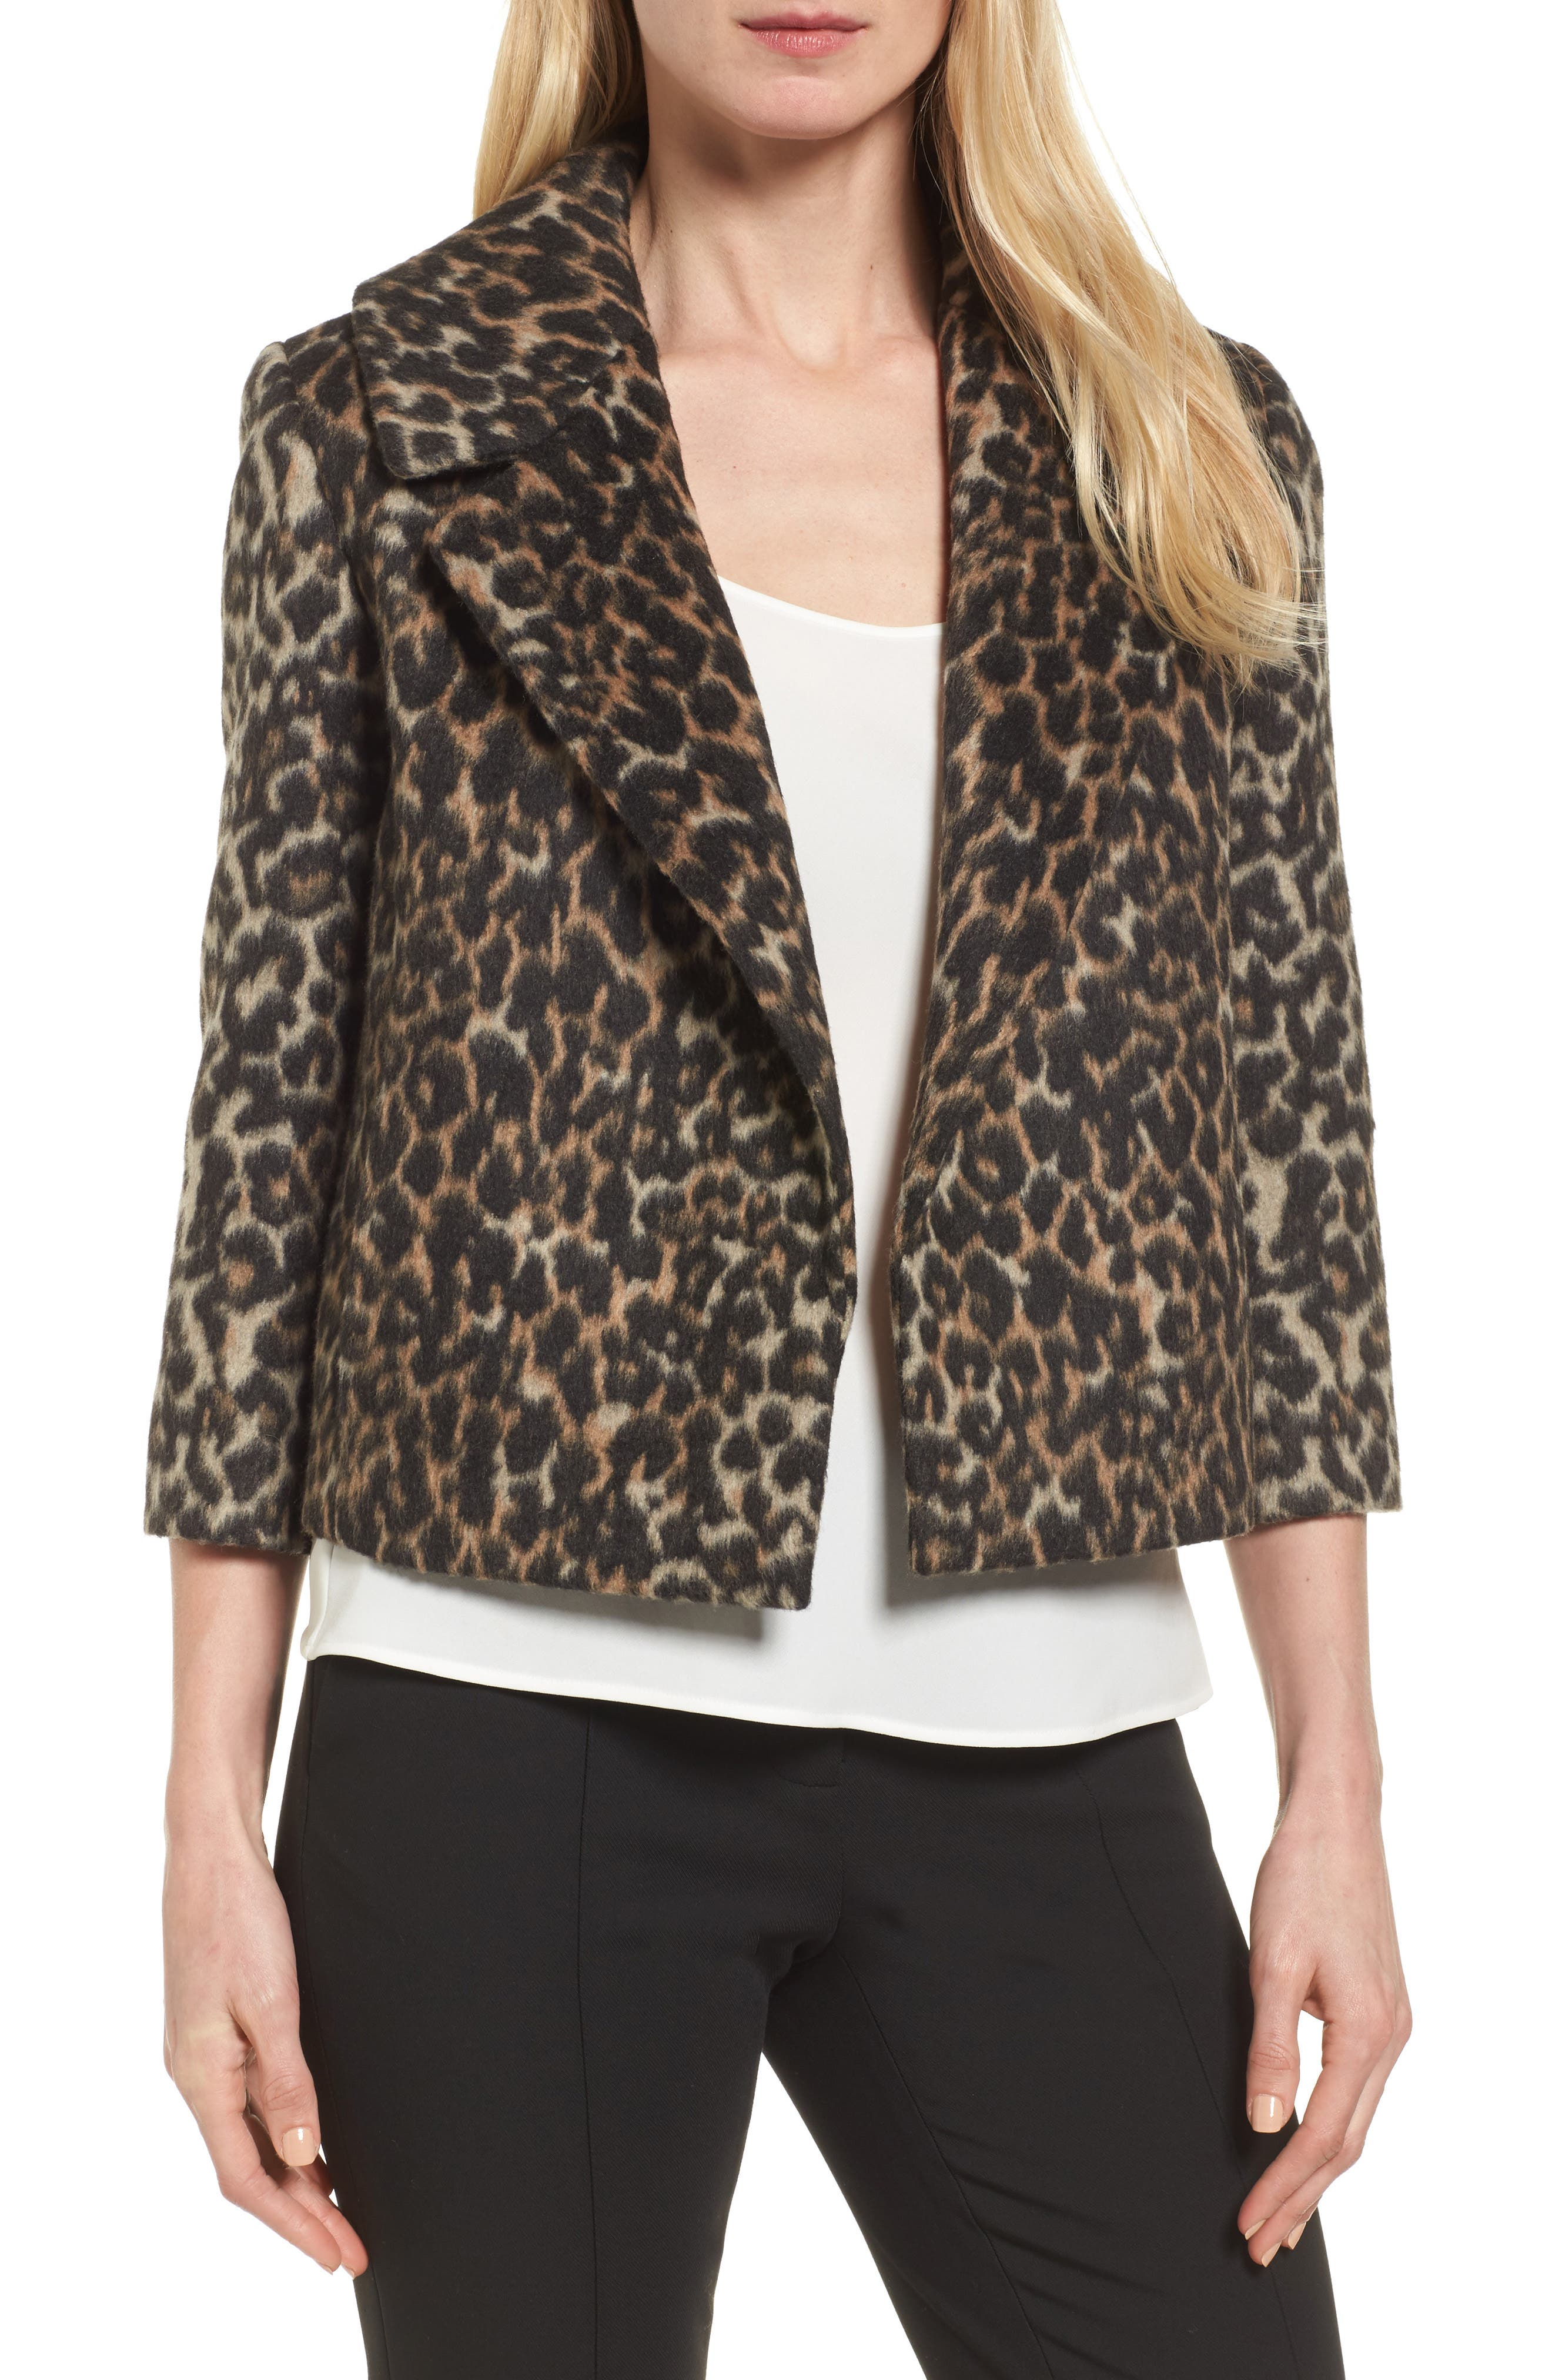 Emerson Rose Leopard Print Faux Fur Jacket